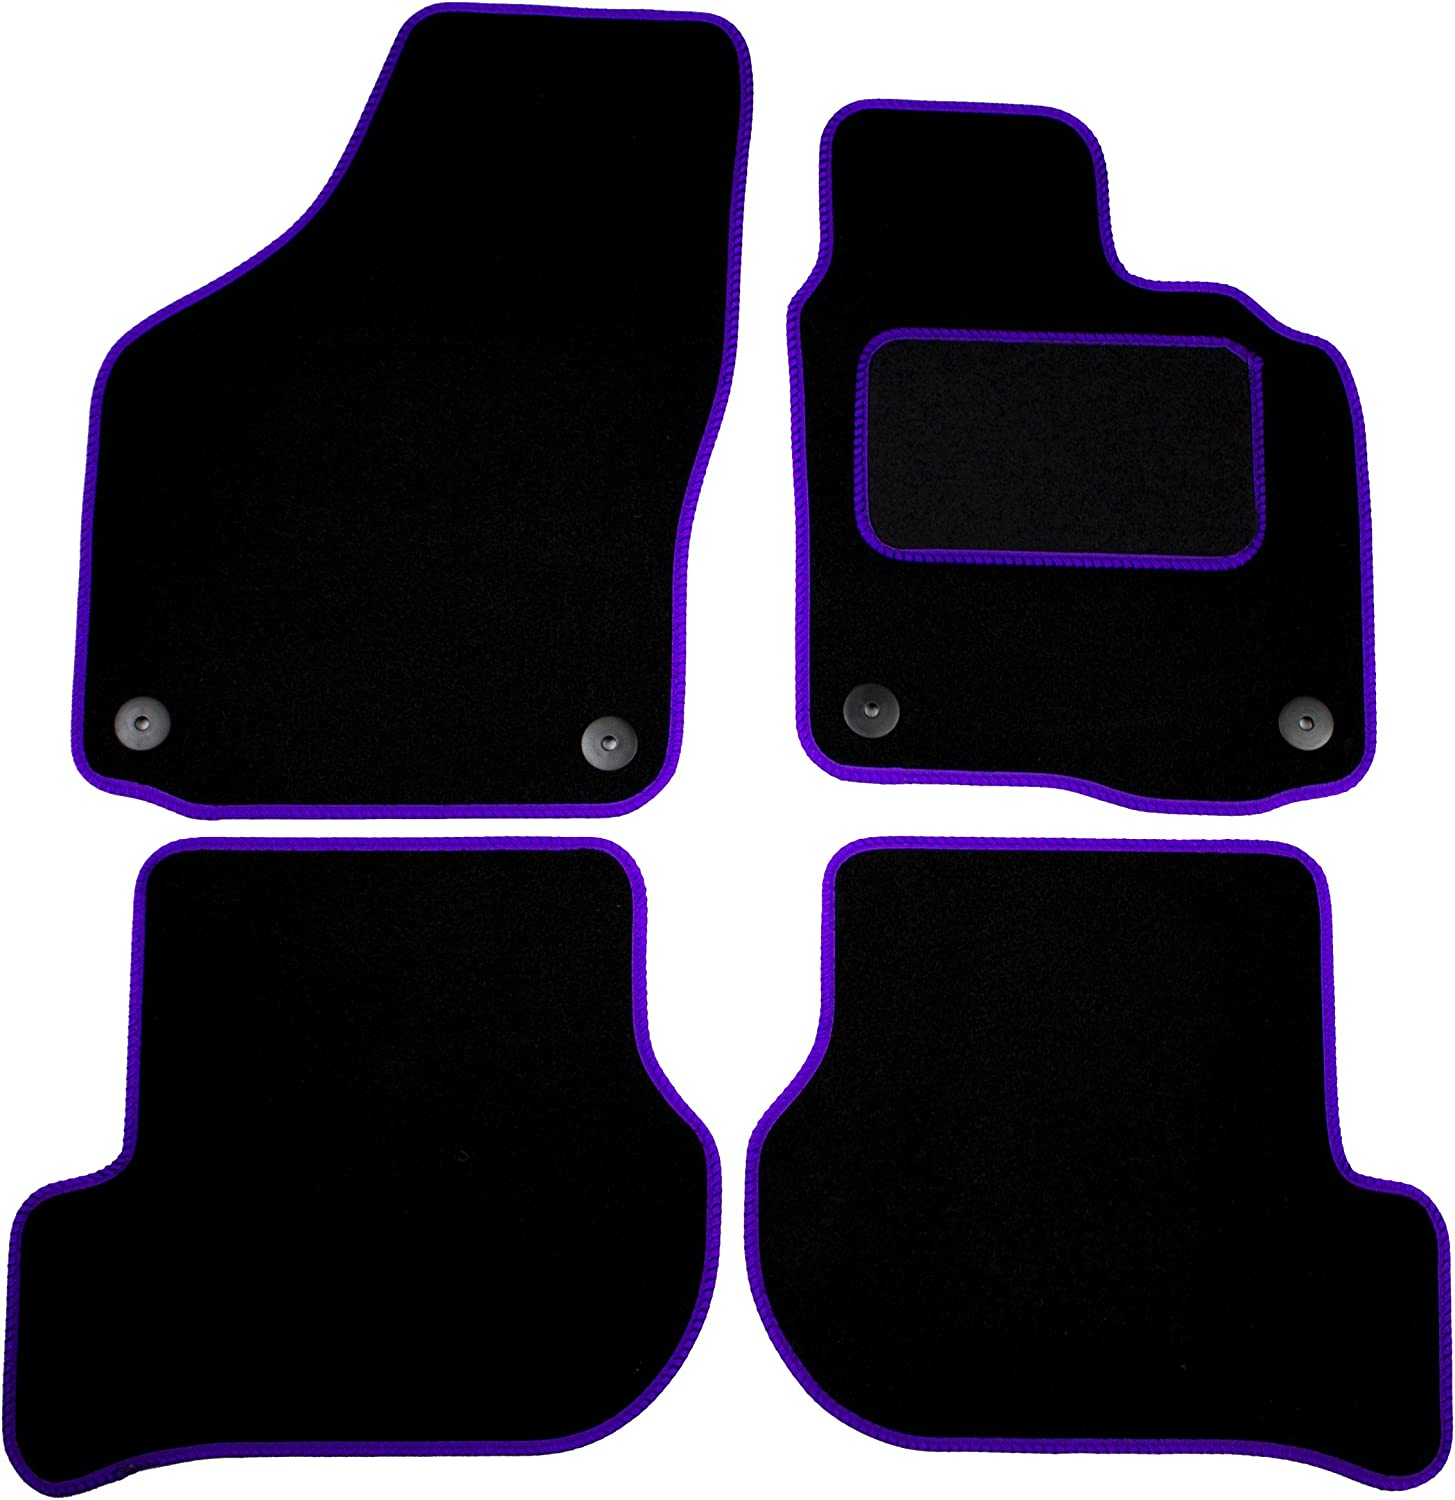 Cosmos V2666STBL15HP Standard Black Tailored Floor Mat with Purple Binding with Heelpad